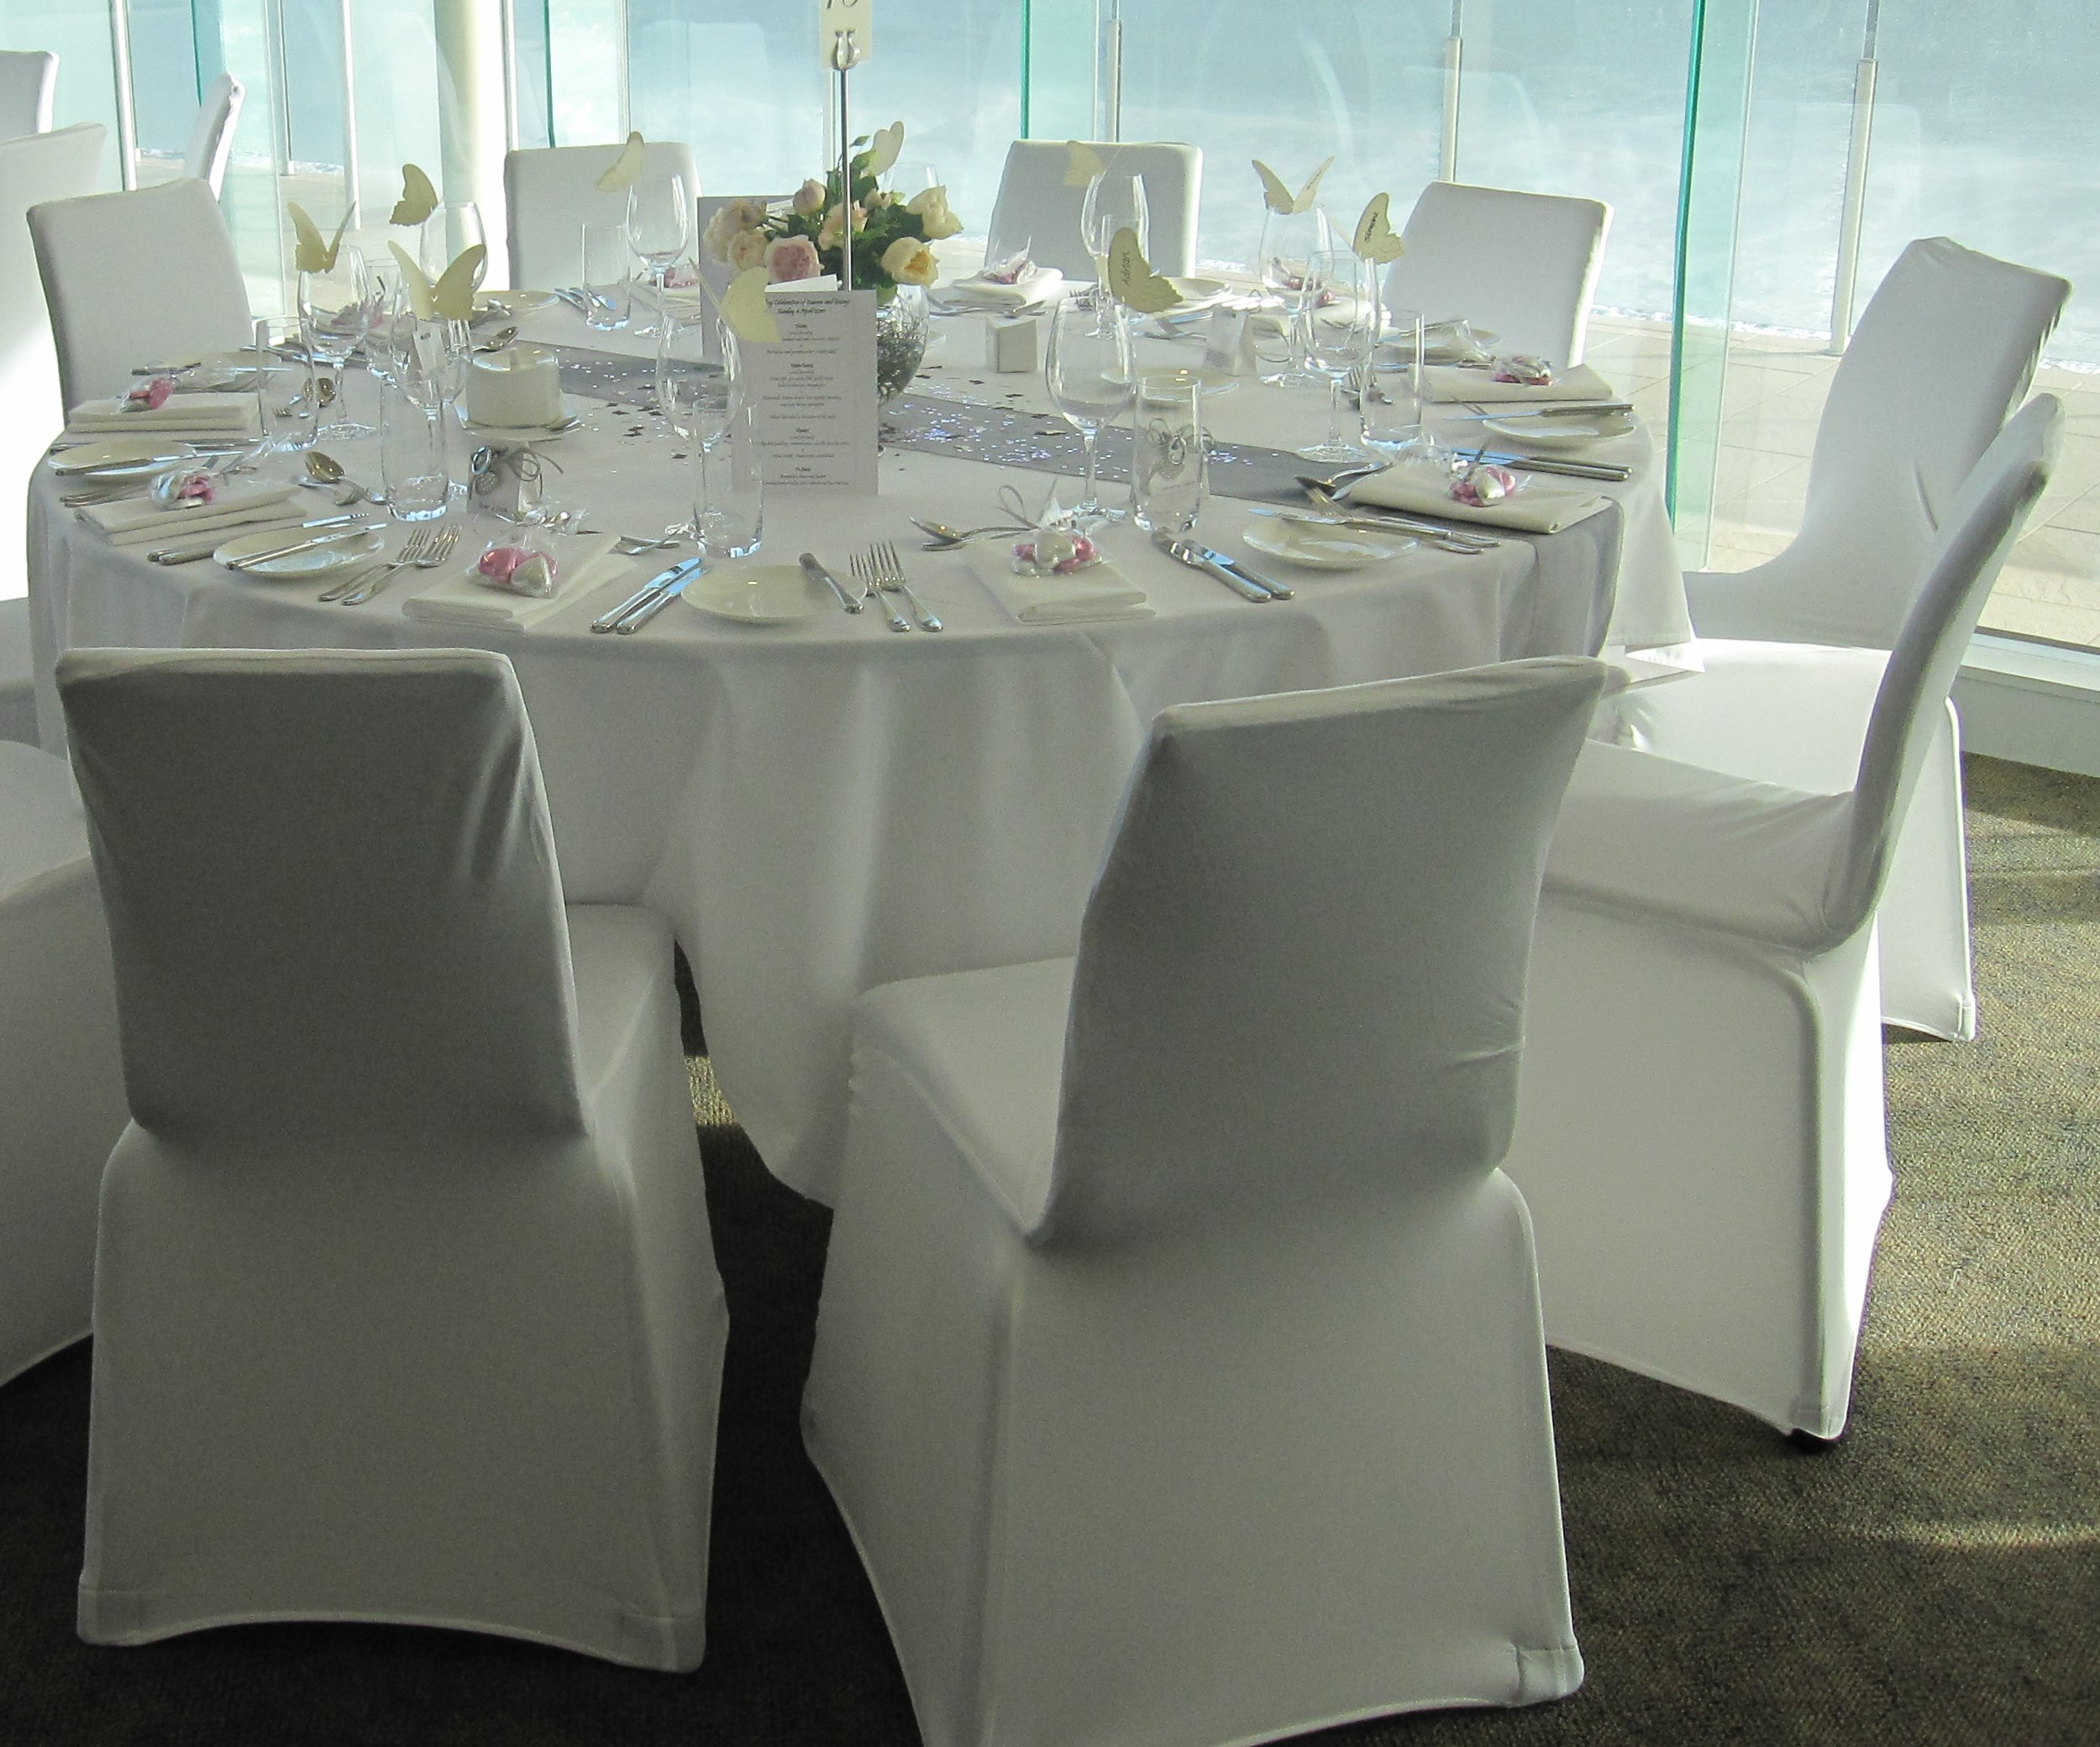 Standard tablcloth and white lycra chair covers